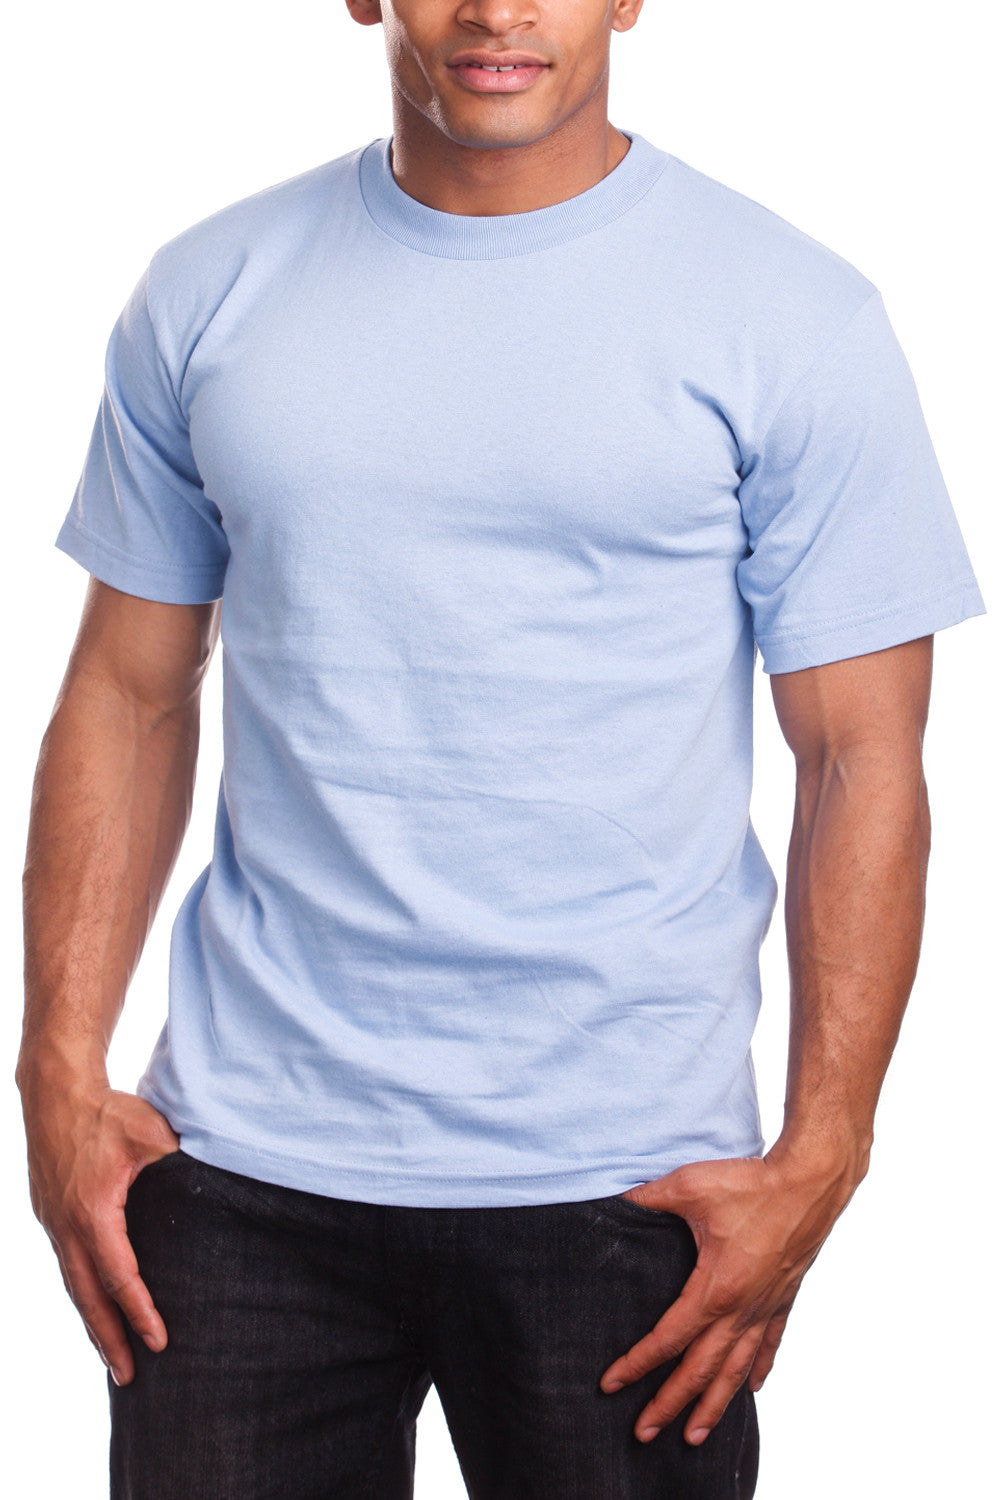 Mens Super Heavy T-Shirt Tee Shirts Tall Size Sky Blue